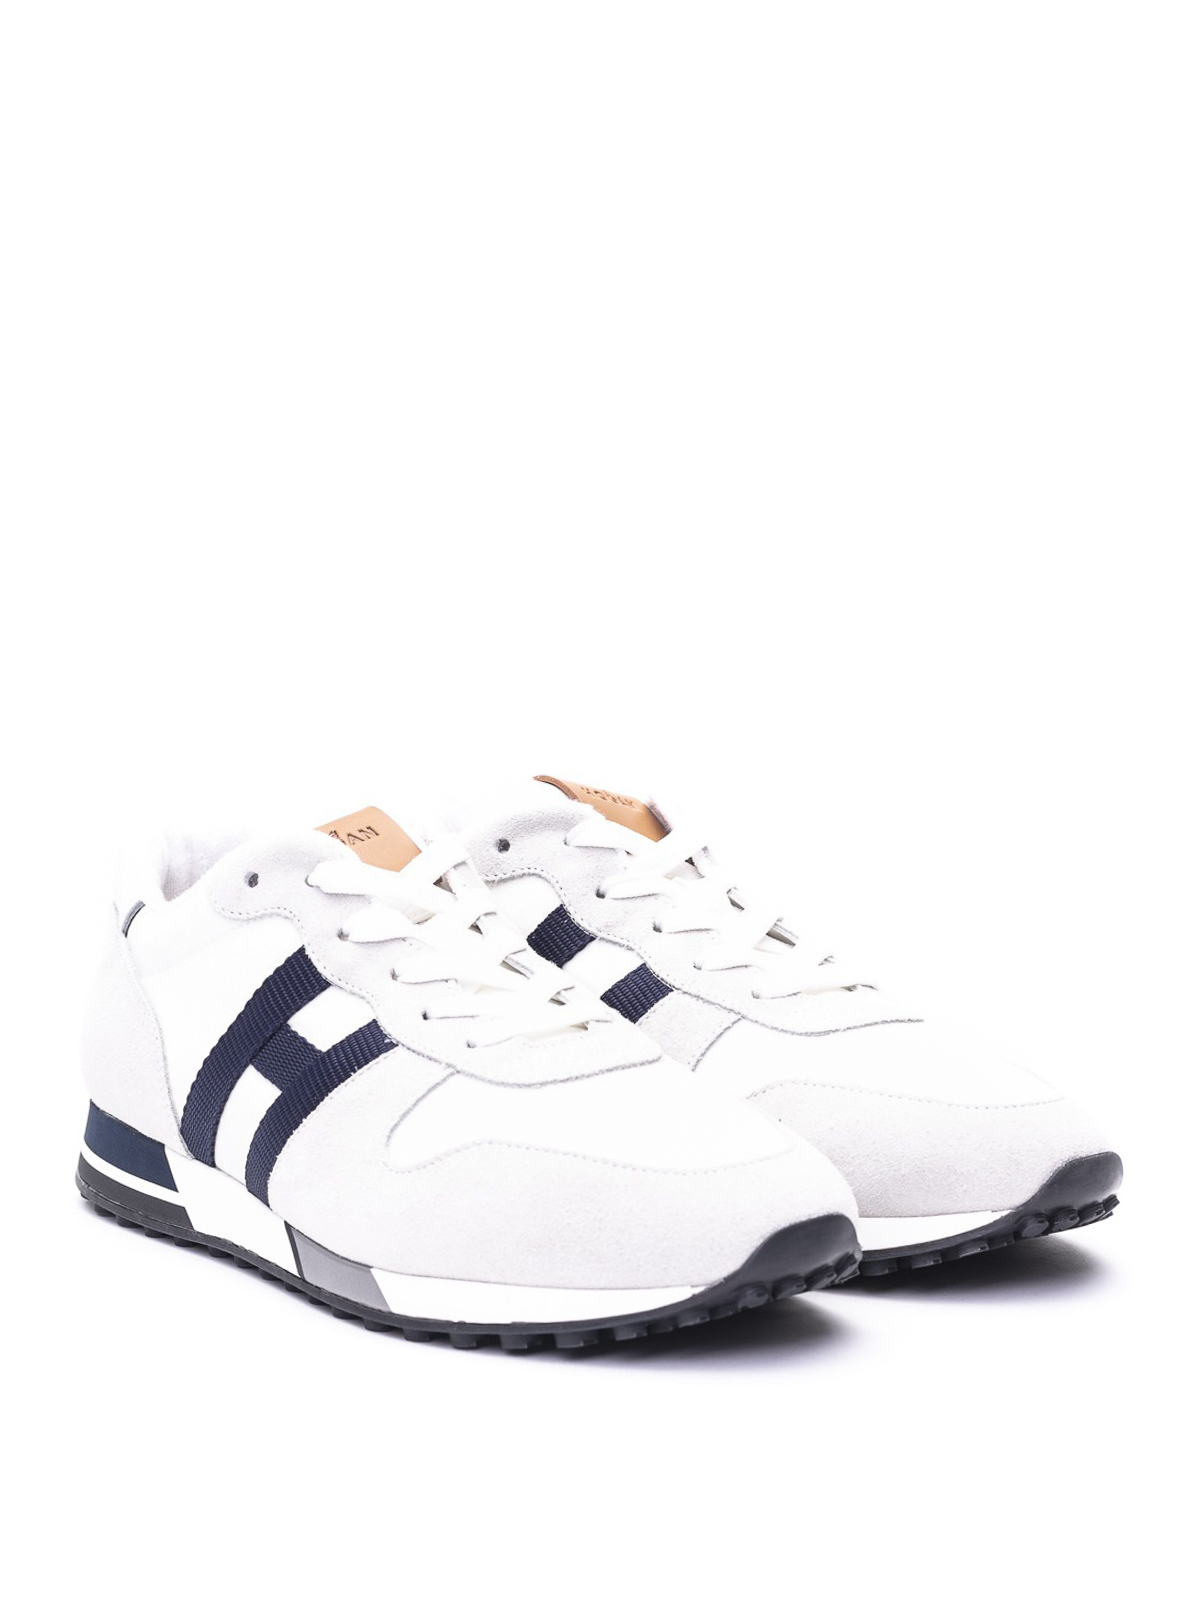 Trainers Hogan - H383 leather sneakers - GYM3830CZ60O58814Z ...